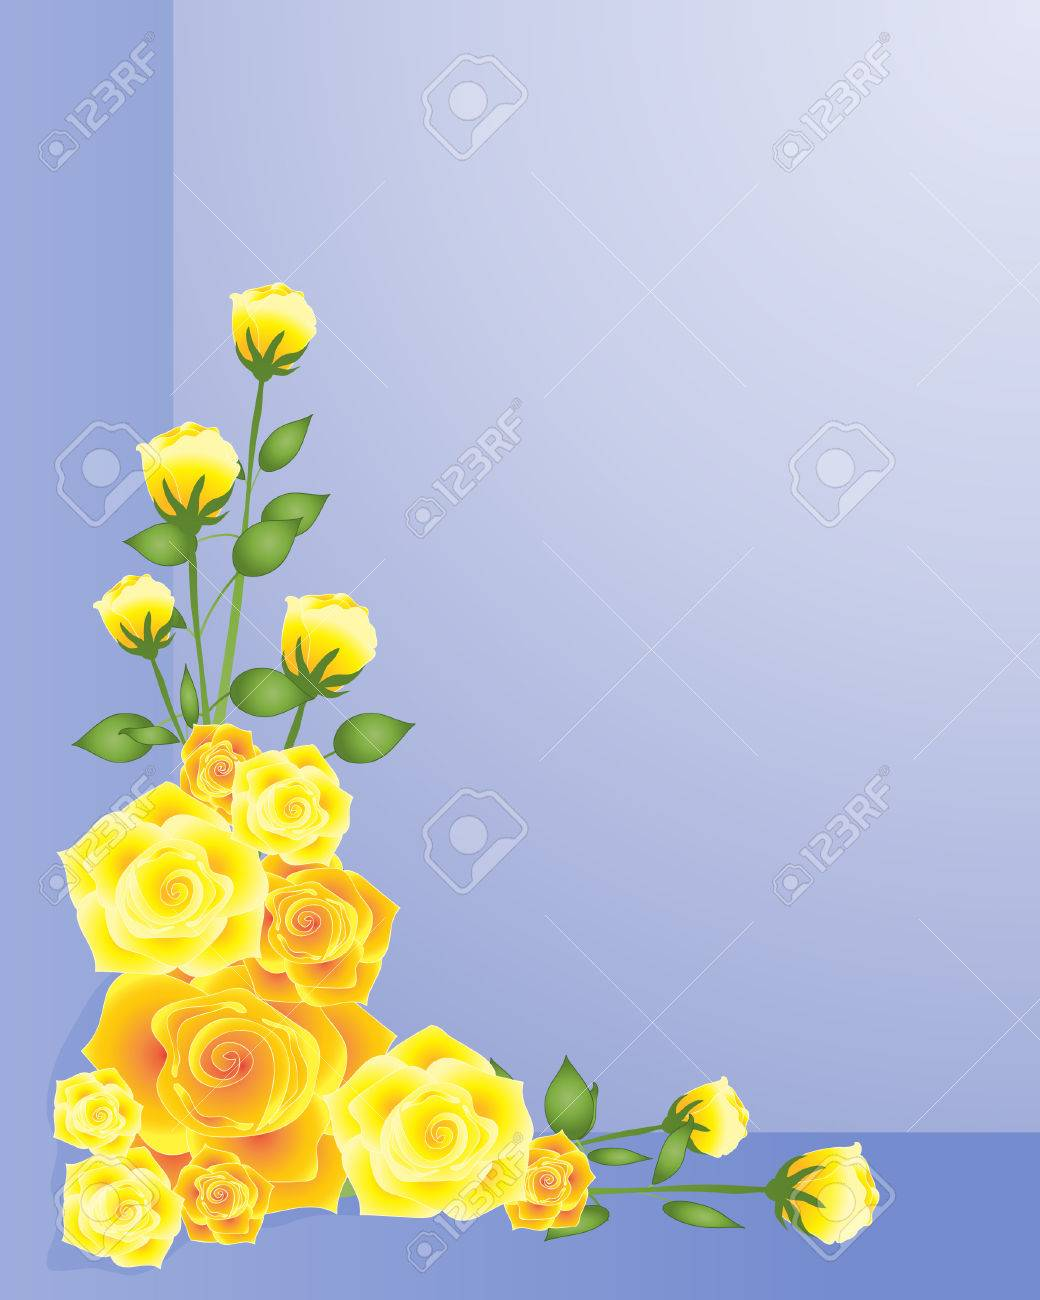 an illustration of an arrangement of yellow roses in one corner on a purple blue background Stock Vector - 8565032